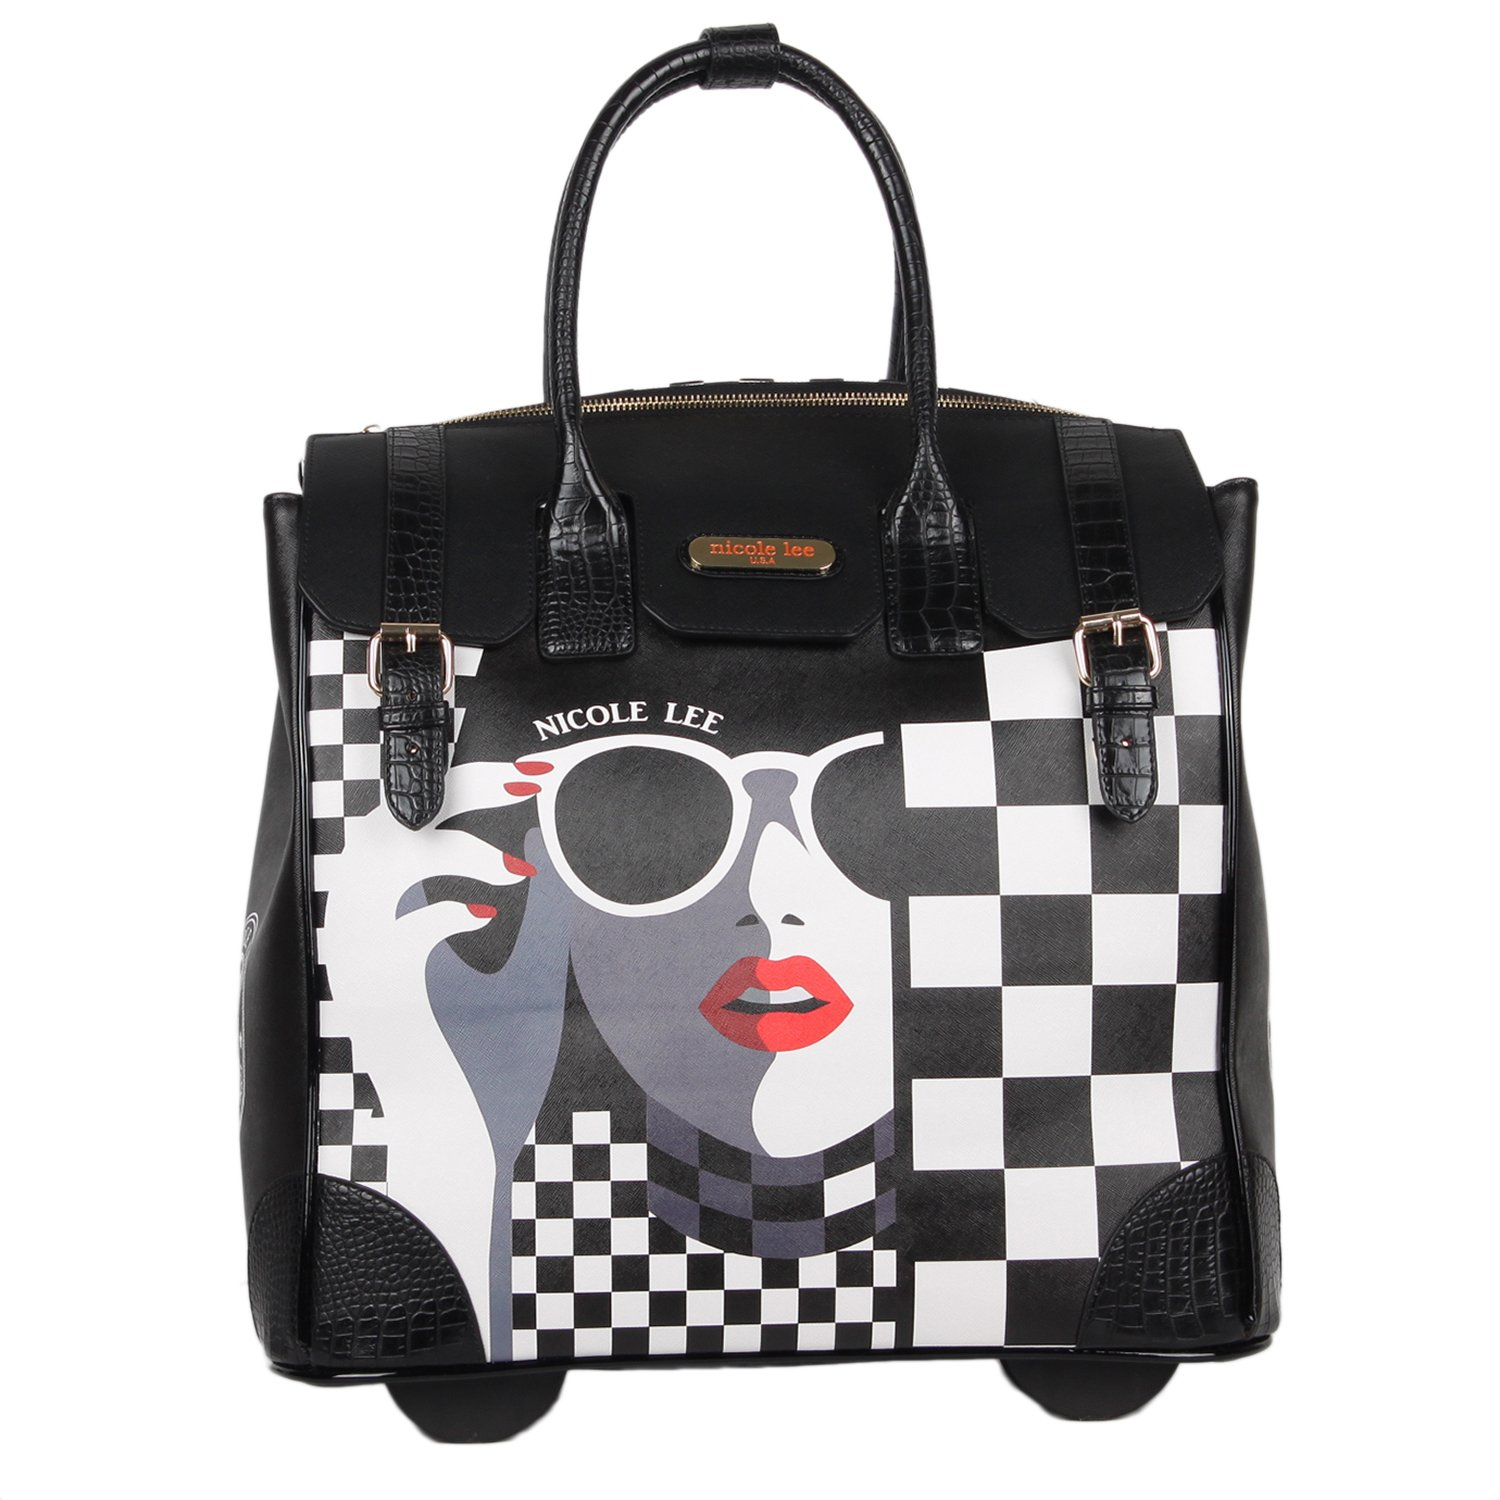 Nicole Lee Women's Fashion [White] Print Rolling Business Laptop Compartment Travel Tote, Lady in Sunglass, One Size